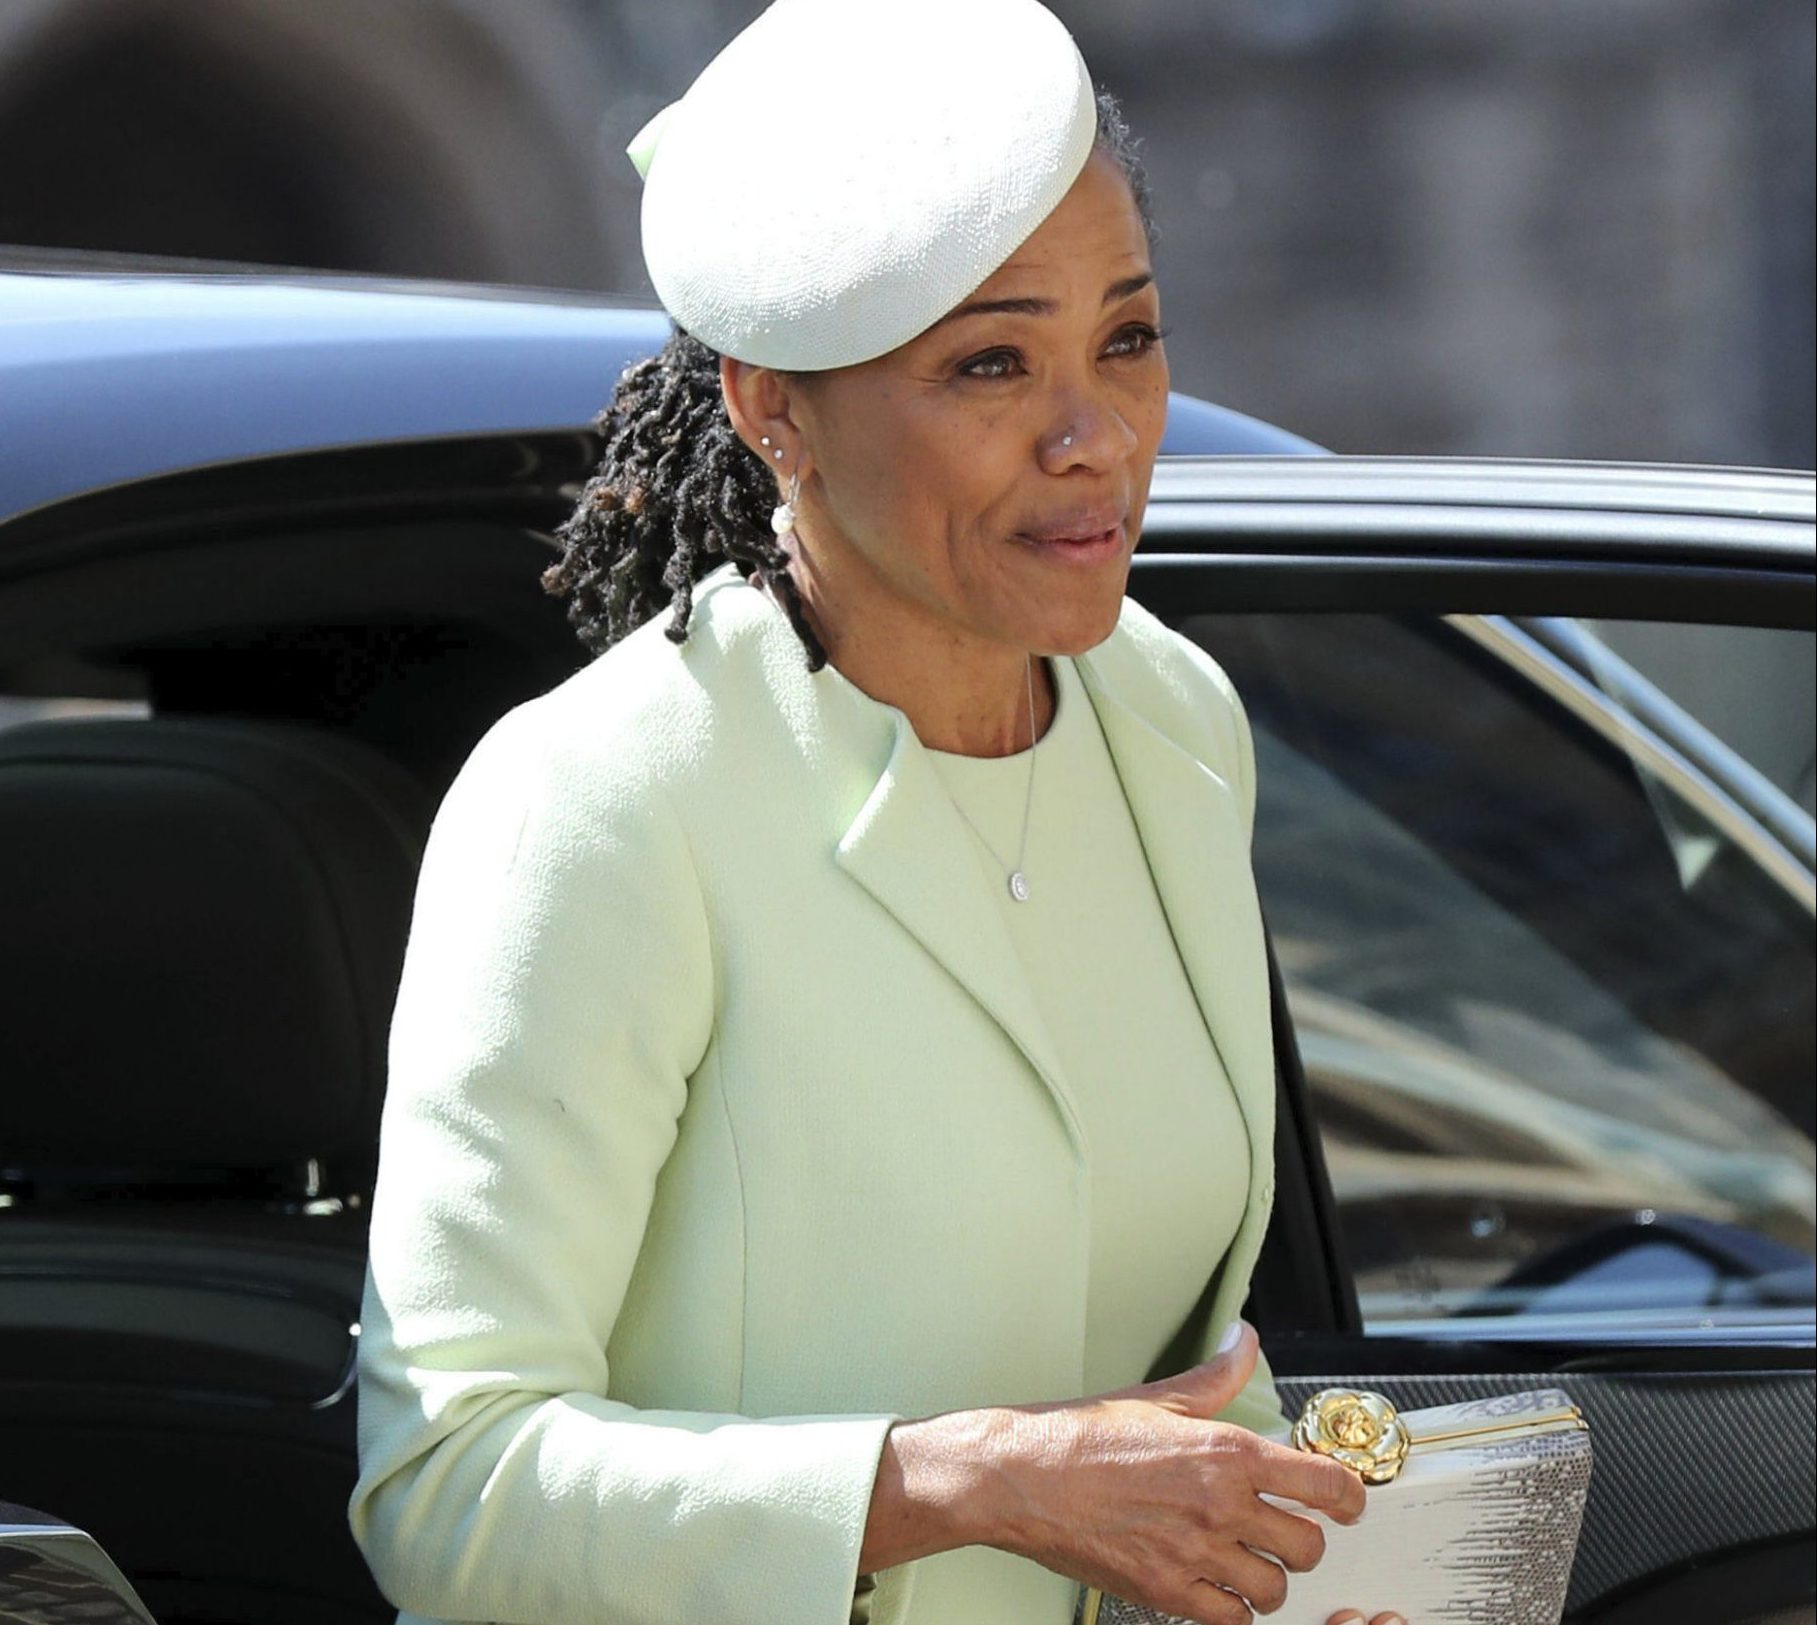 Doria Ragland arrives for the wedding ceremony of Prince Harry and Meghan Markle at St. George's Chapel in Windsor Castle in Windsor, near London, England, Saturday, May 19, 2018. (Gareth Fuller/pool photo via AP)